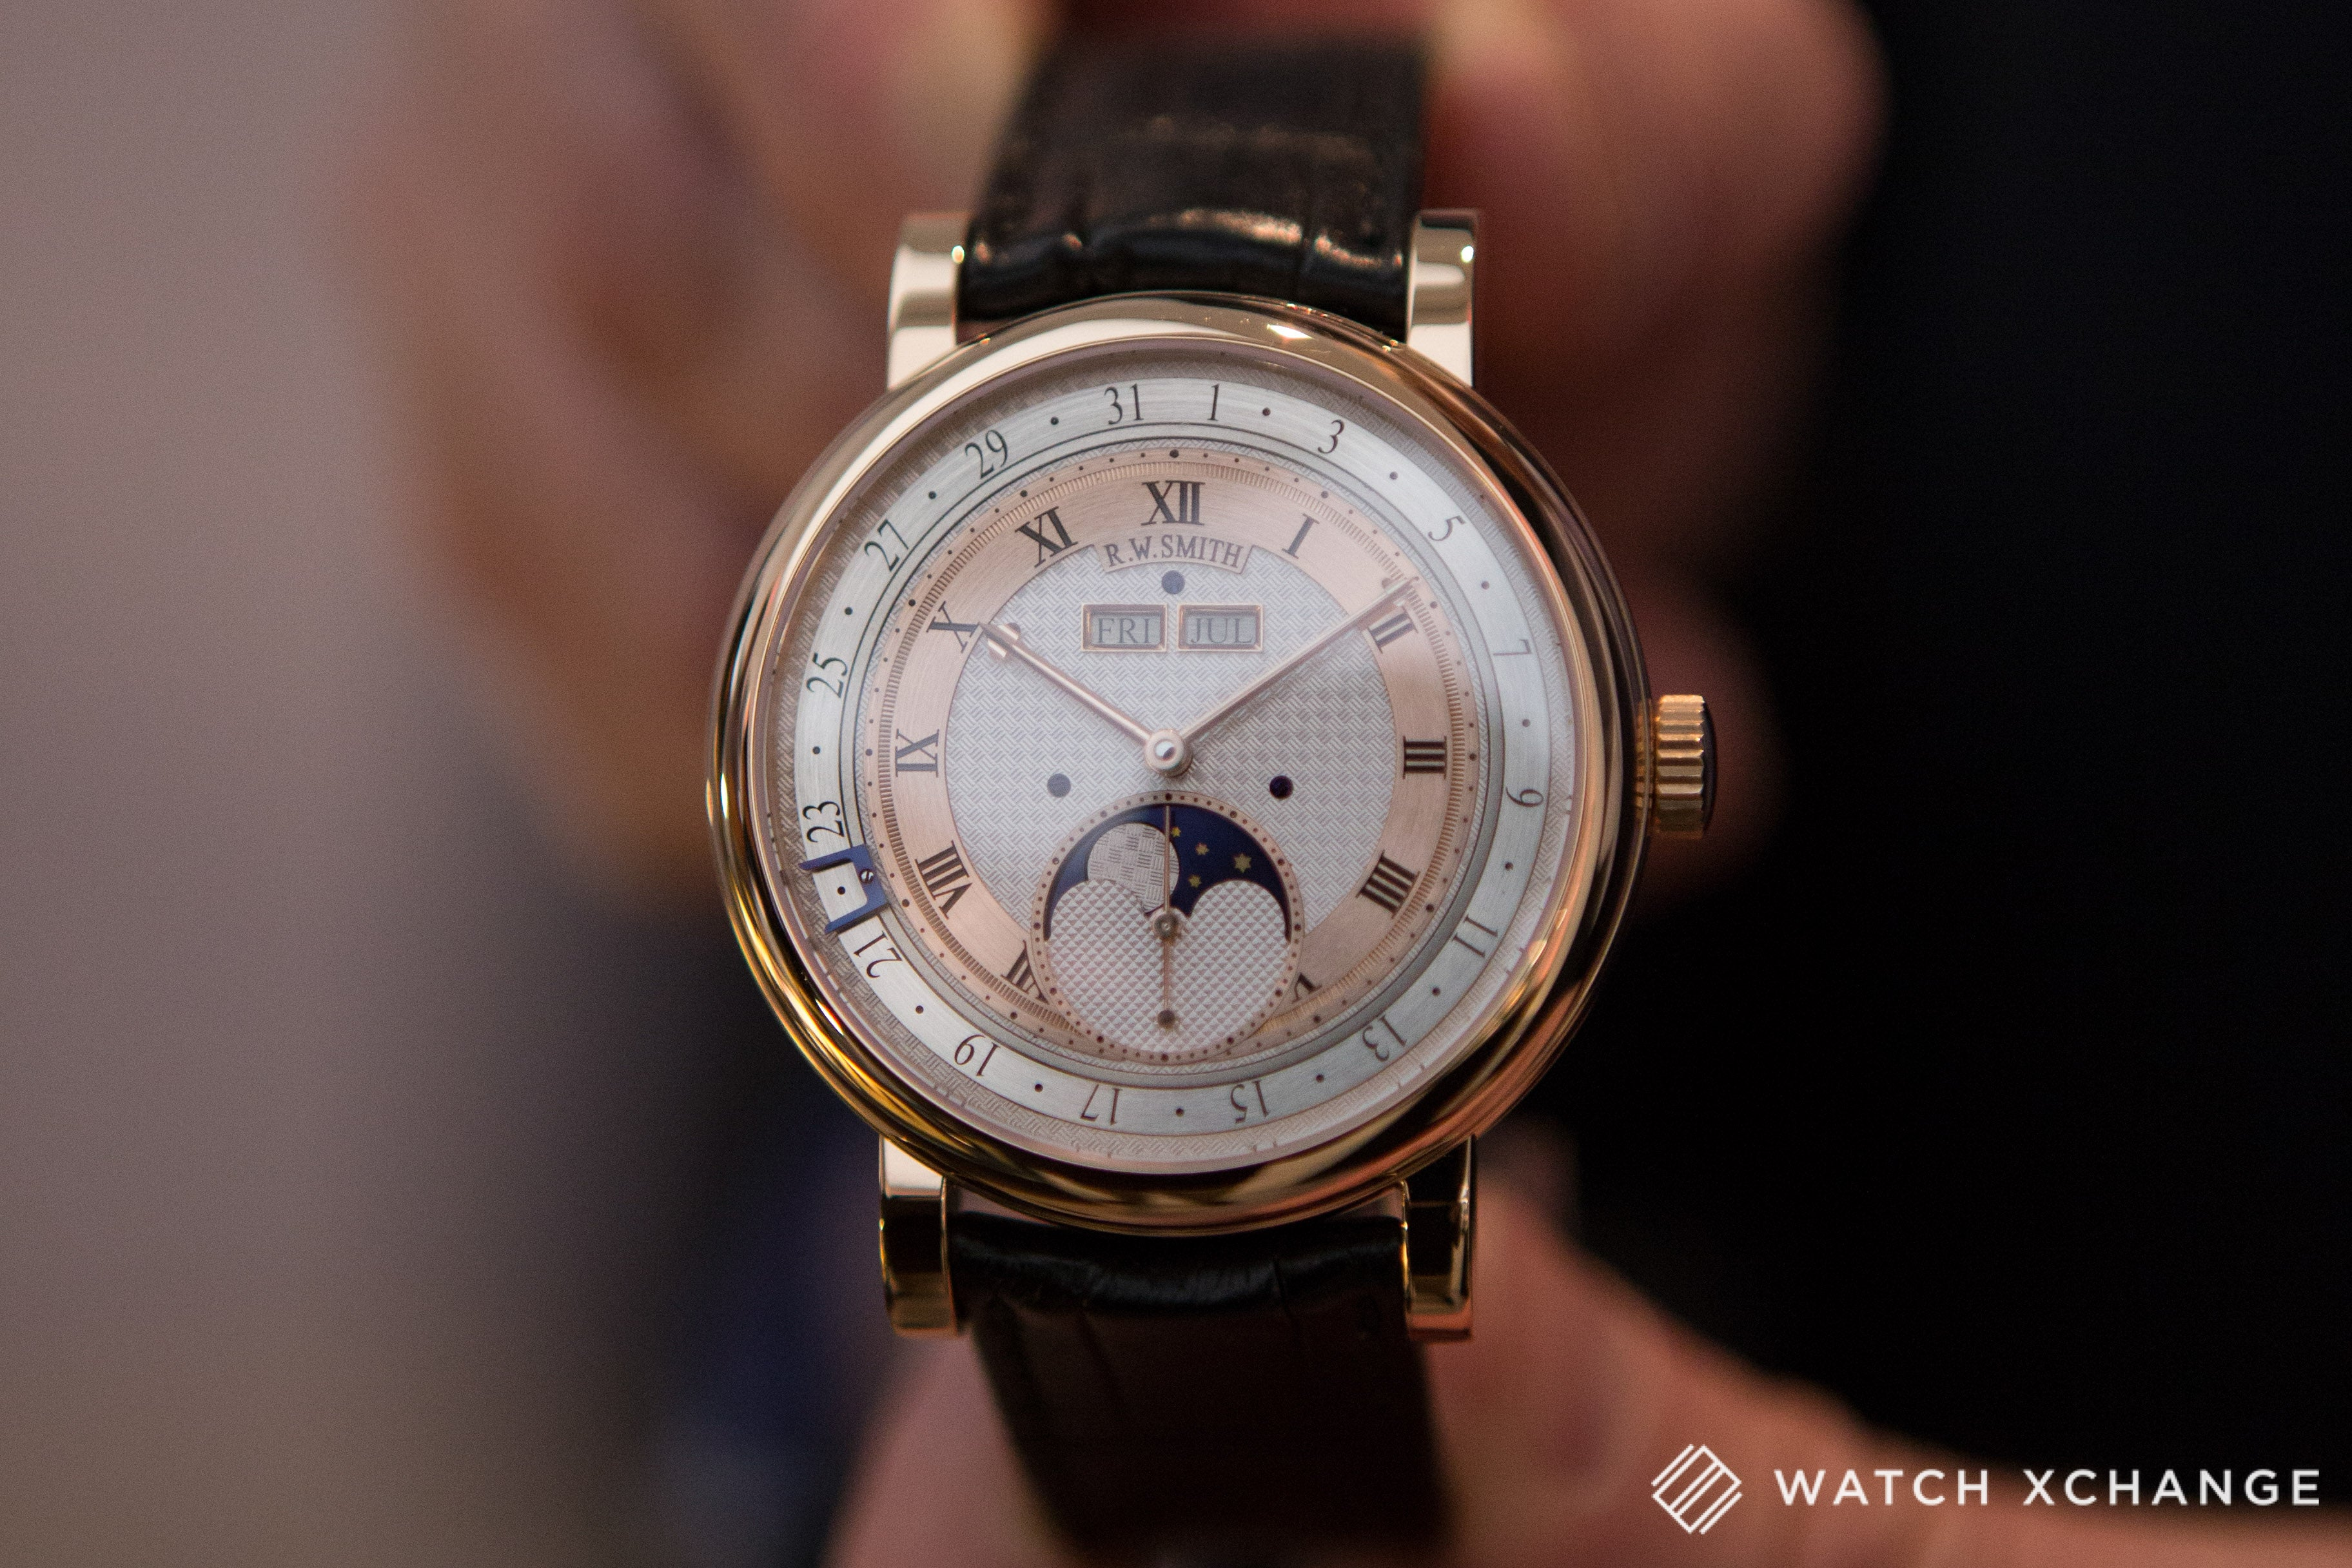 Roger W. Smith independent British watchmaker new Series 4 watch at Salon QP London 2015